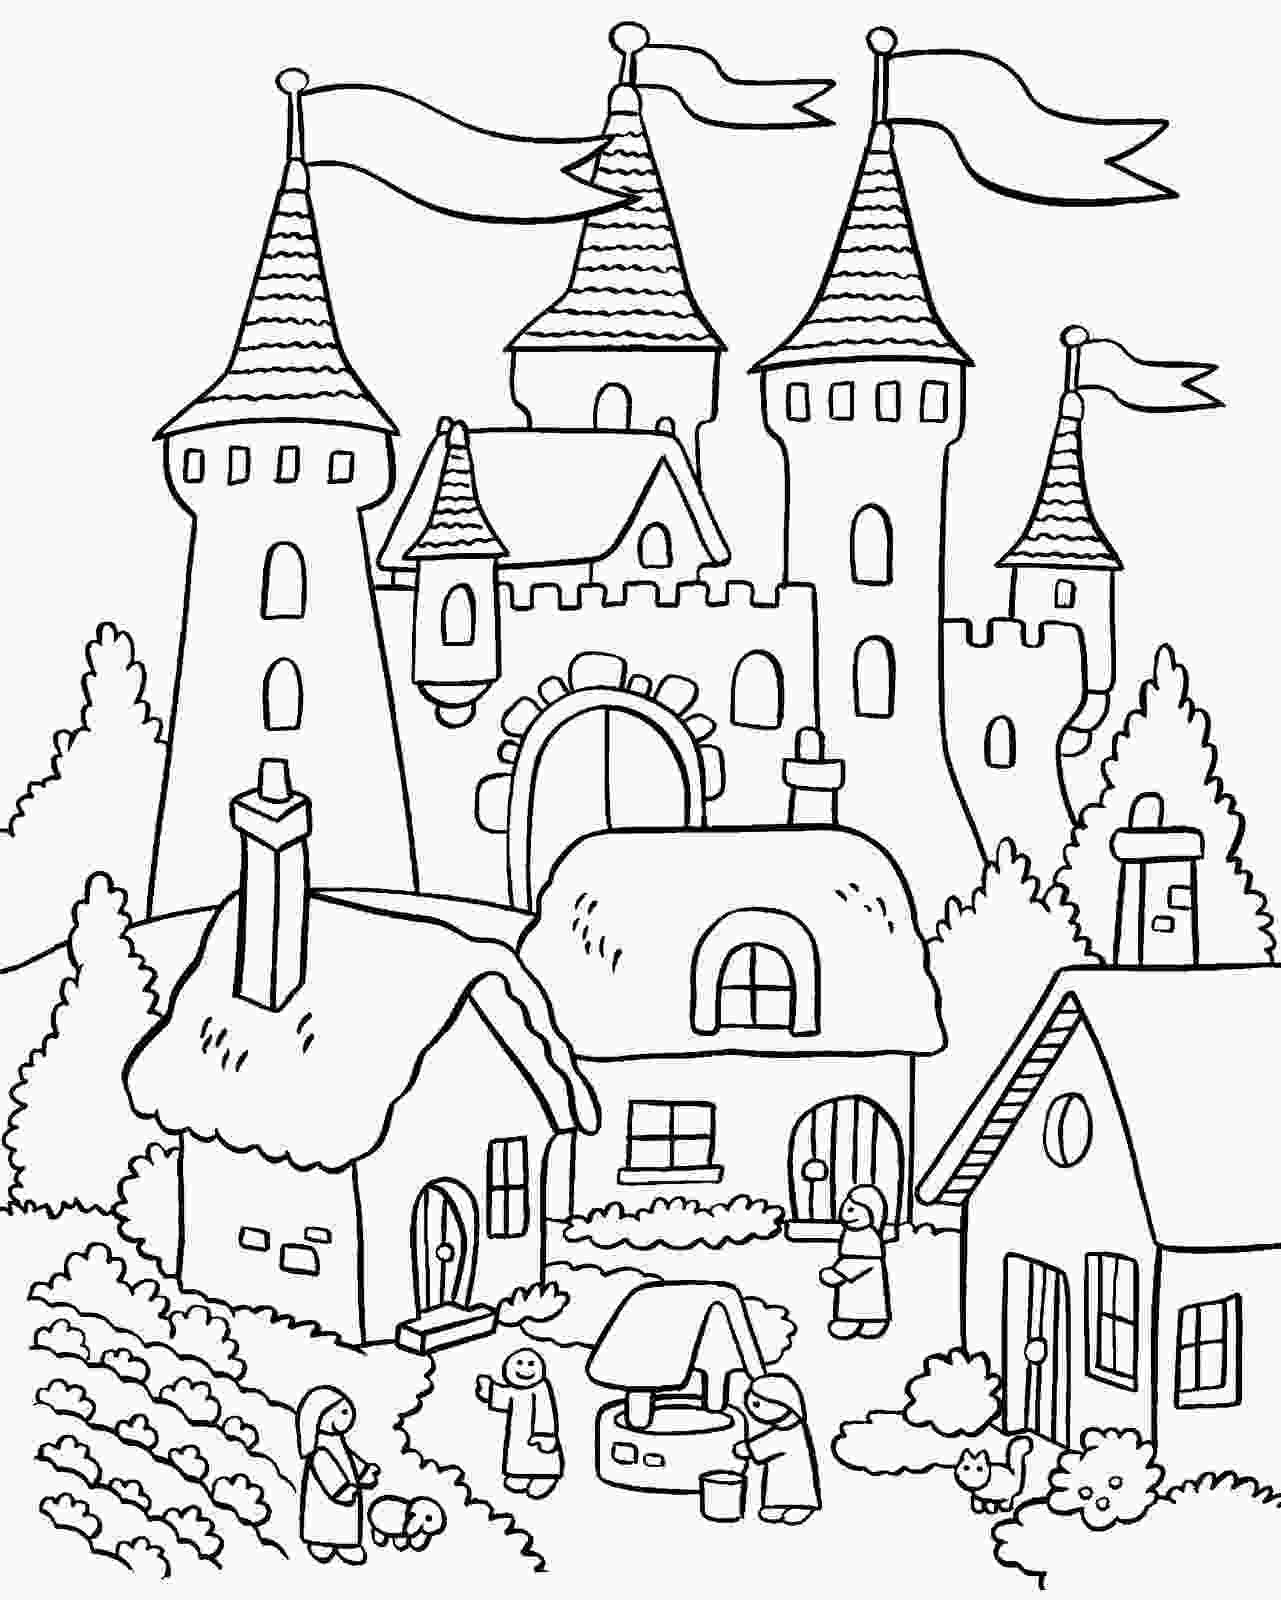 coloring sheets printable free garden coloring pages to download and print for free